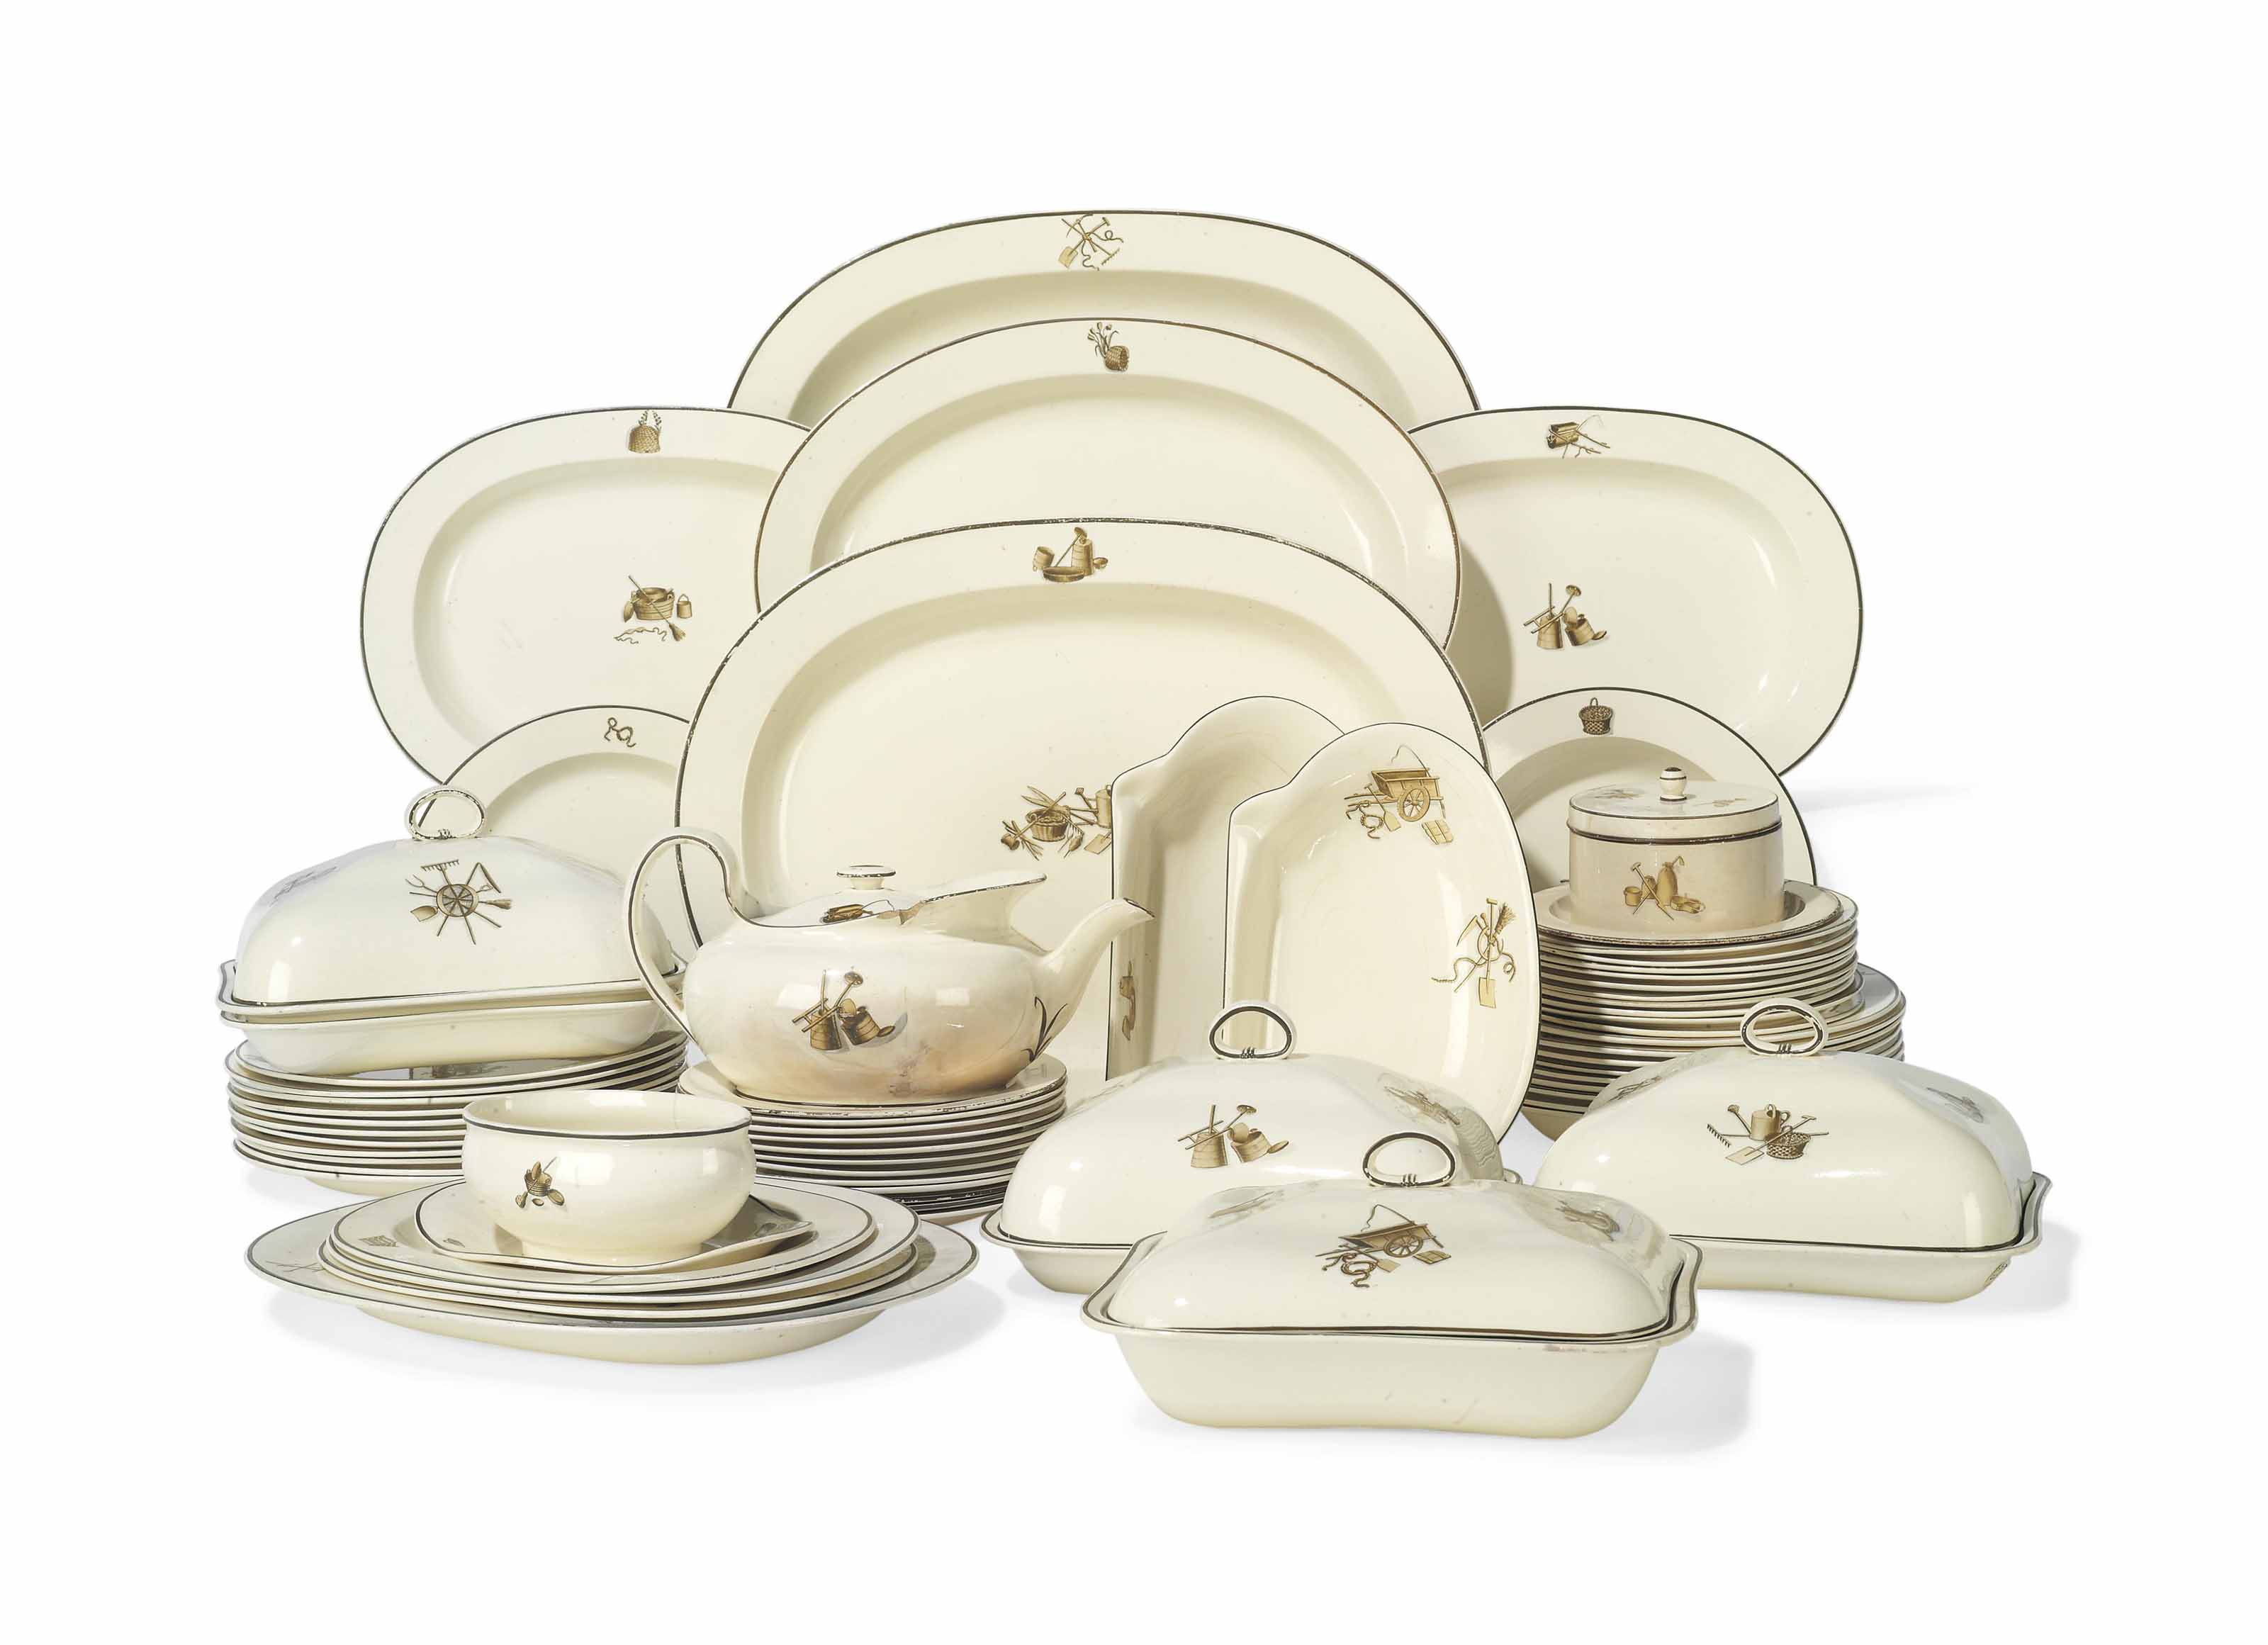 A WEDGWOOD QUEEN'S WARE 'AGRICULTURAL DEVICES' PART DINNER-SERVICE